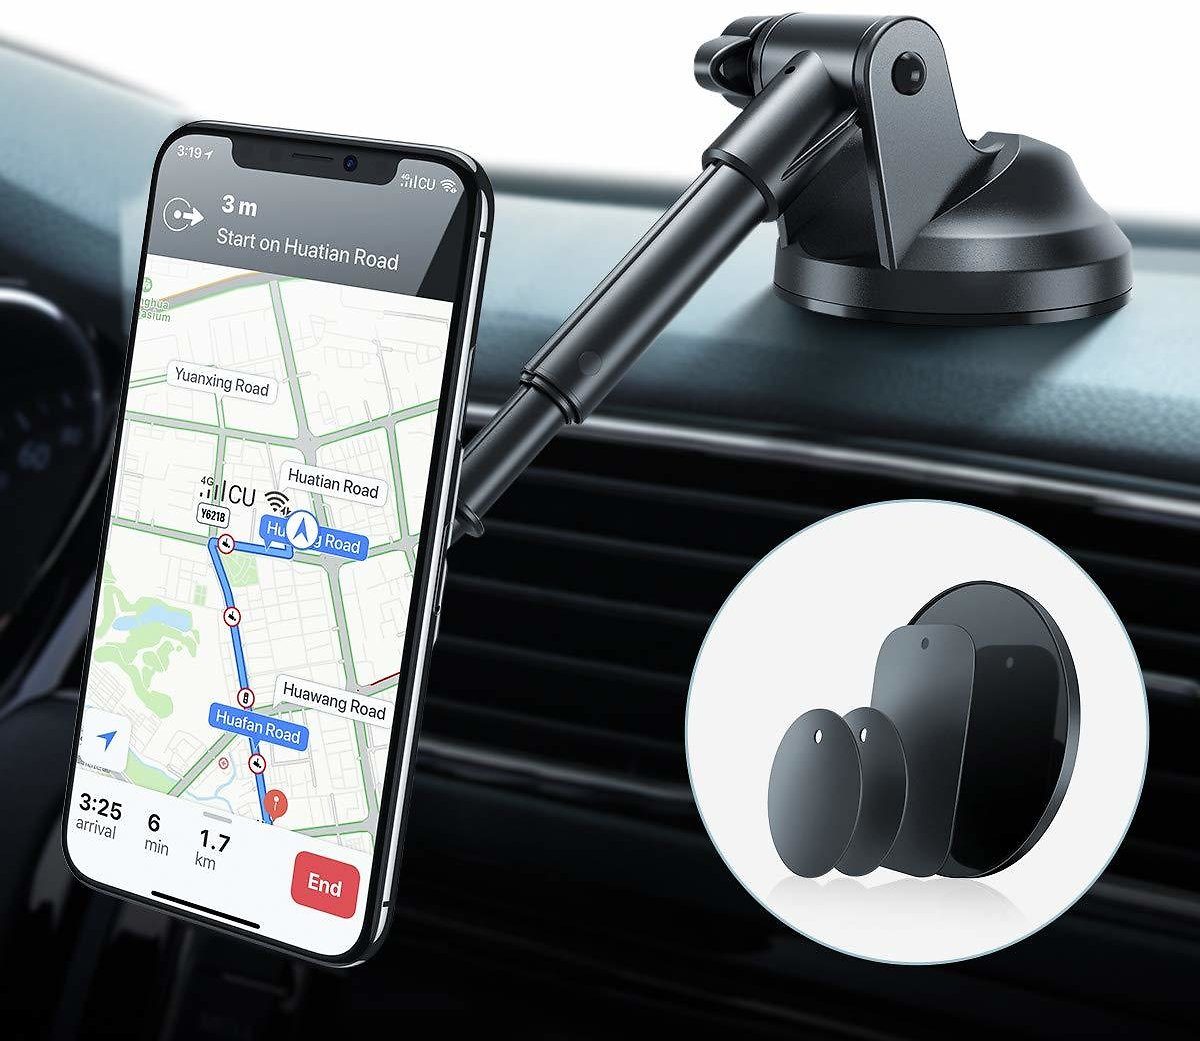 AINOPE Magnetic Phone Car Mount, 6 Strong Magnets Phone Holder for Car Dashboard and Windshield, 360° Rotation & Metal Telescopic Arm, Hands-Free Car Phone Holder for with 3''-7'' Phone